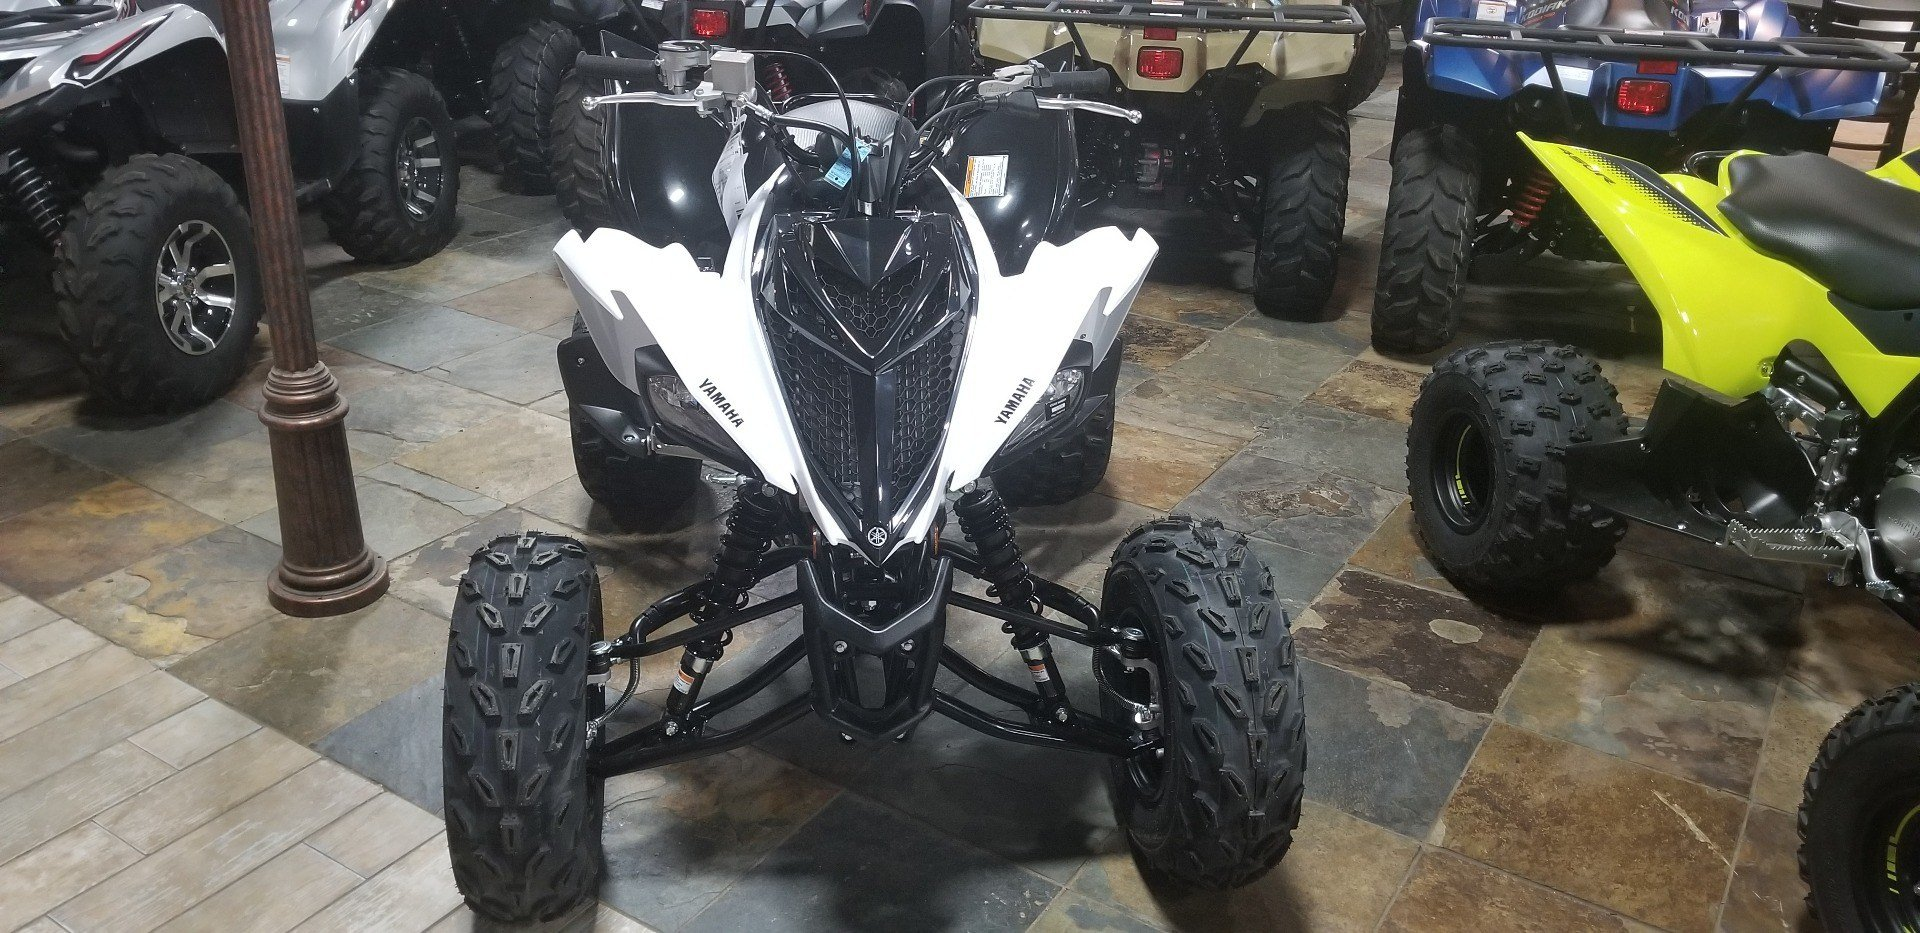 2020 Yamaha Raptor 700 in Dimondale, Michigan - Photo 1